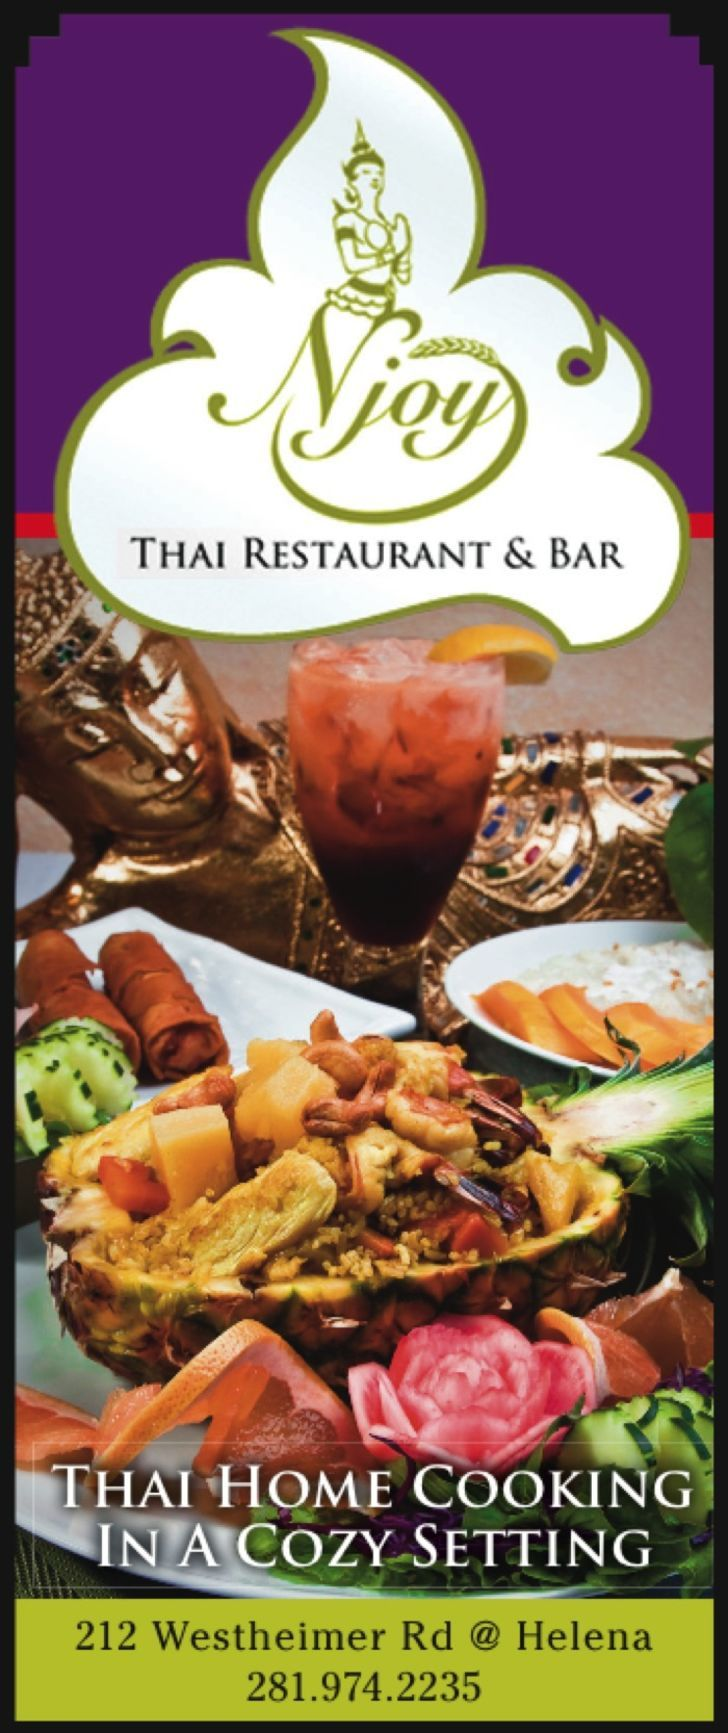 Njoy Thai Restaurant & Bar 